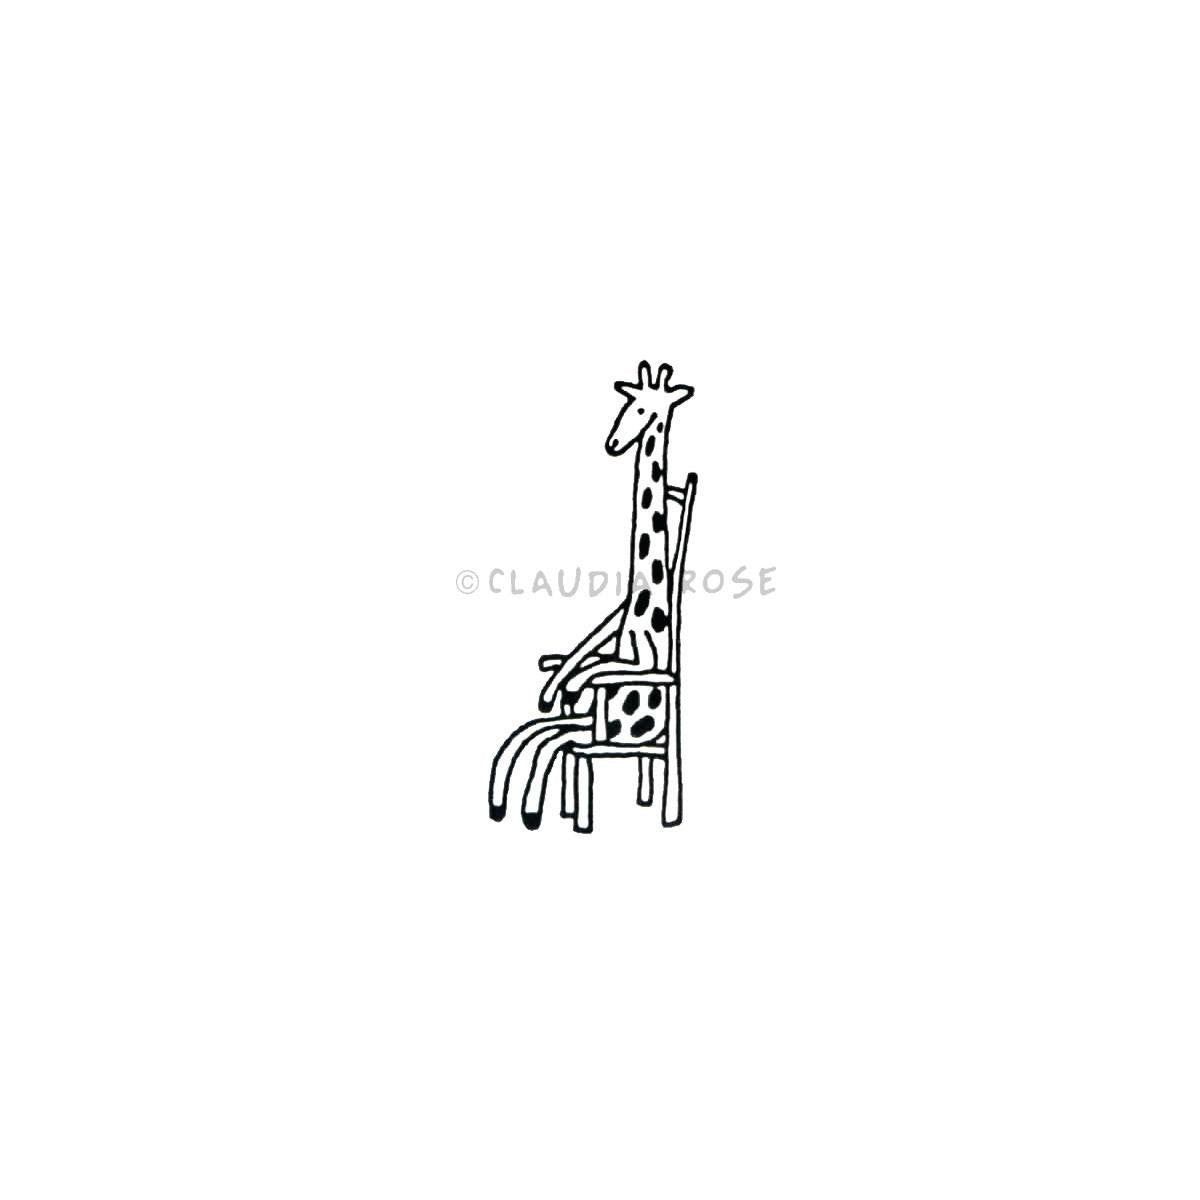 Claudia Rose | CR3515D - Anita Giraffe - Rubber Art Stamp